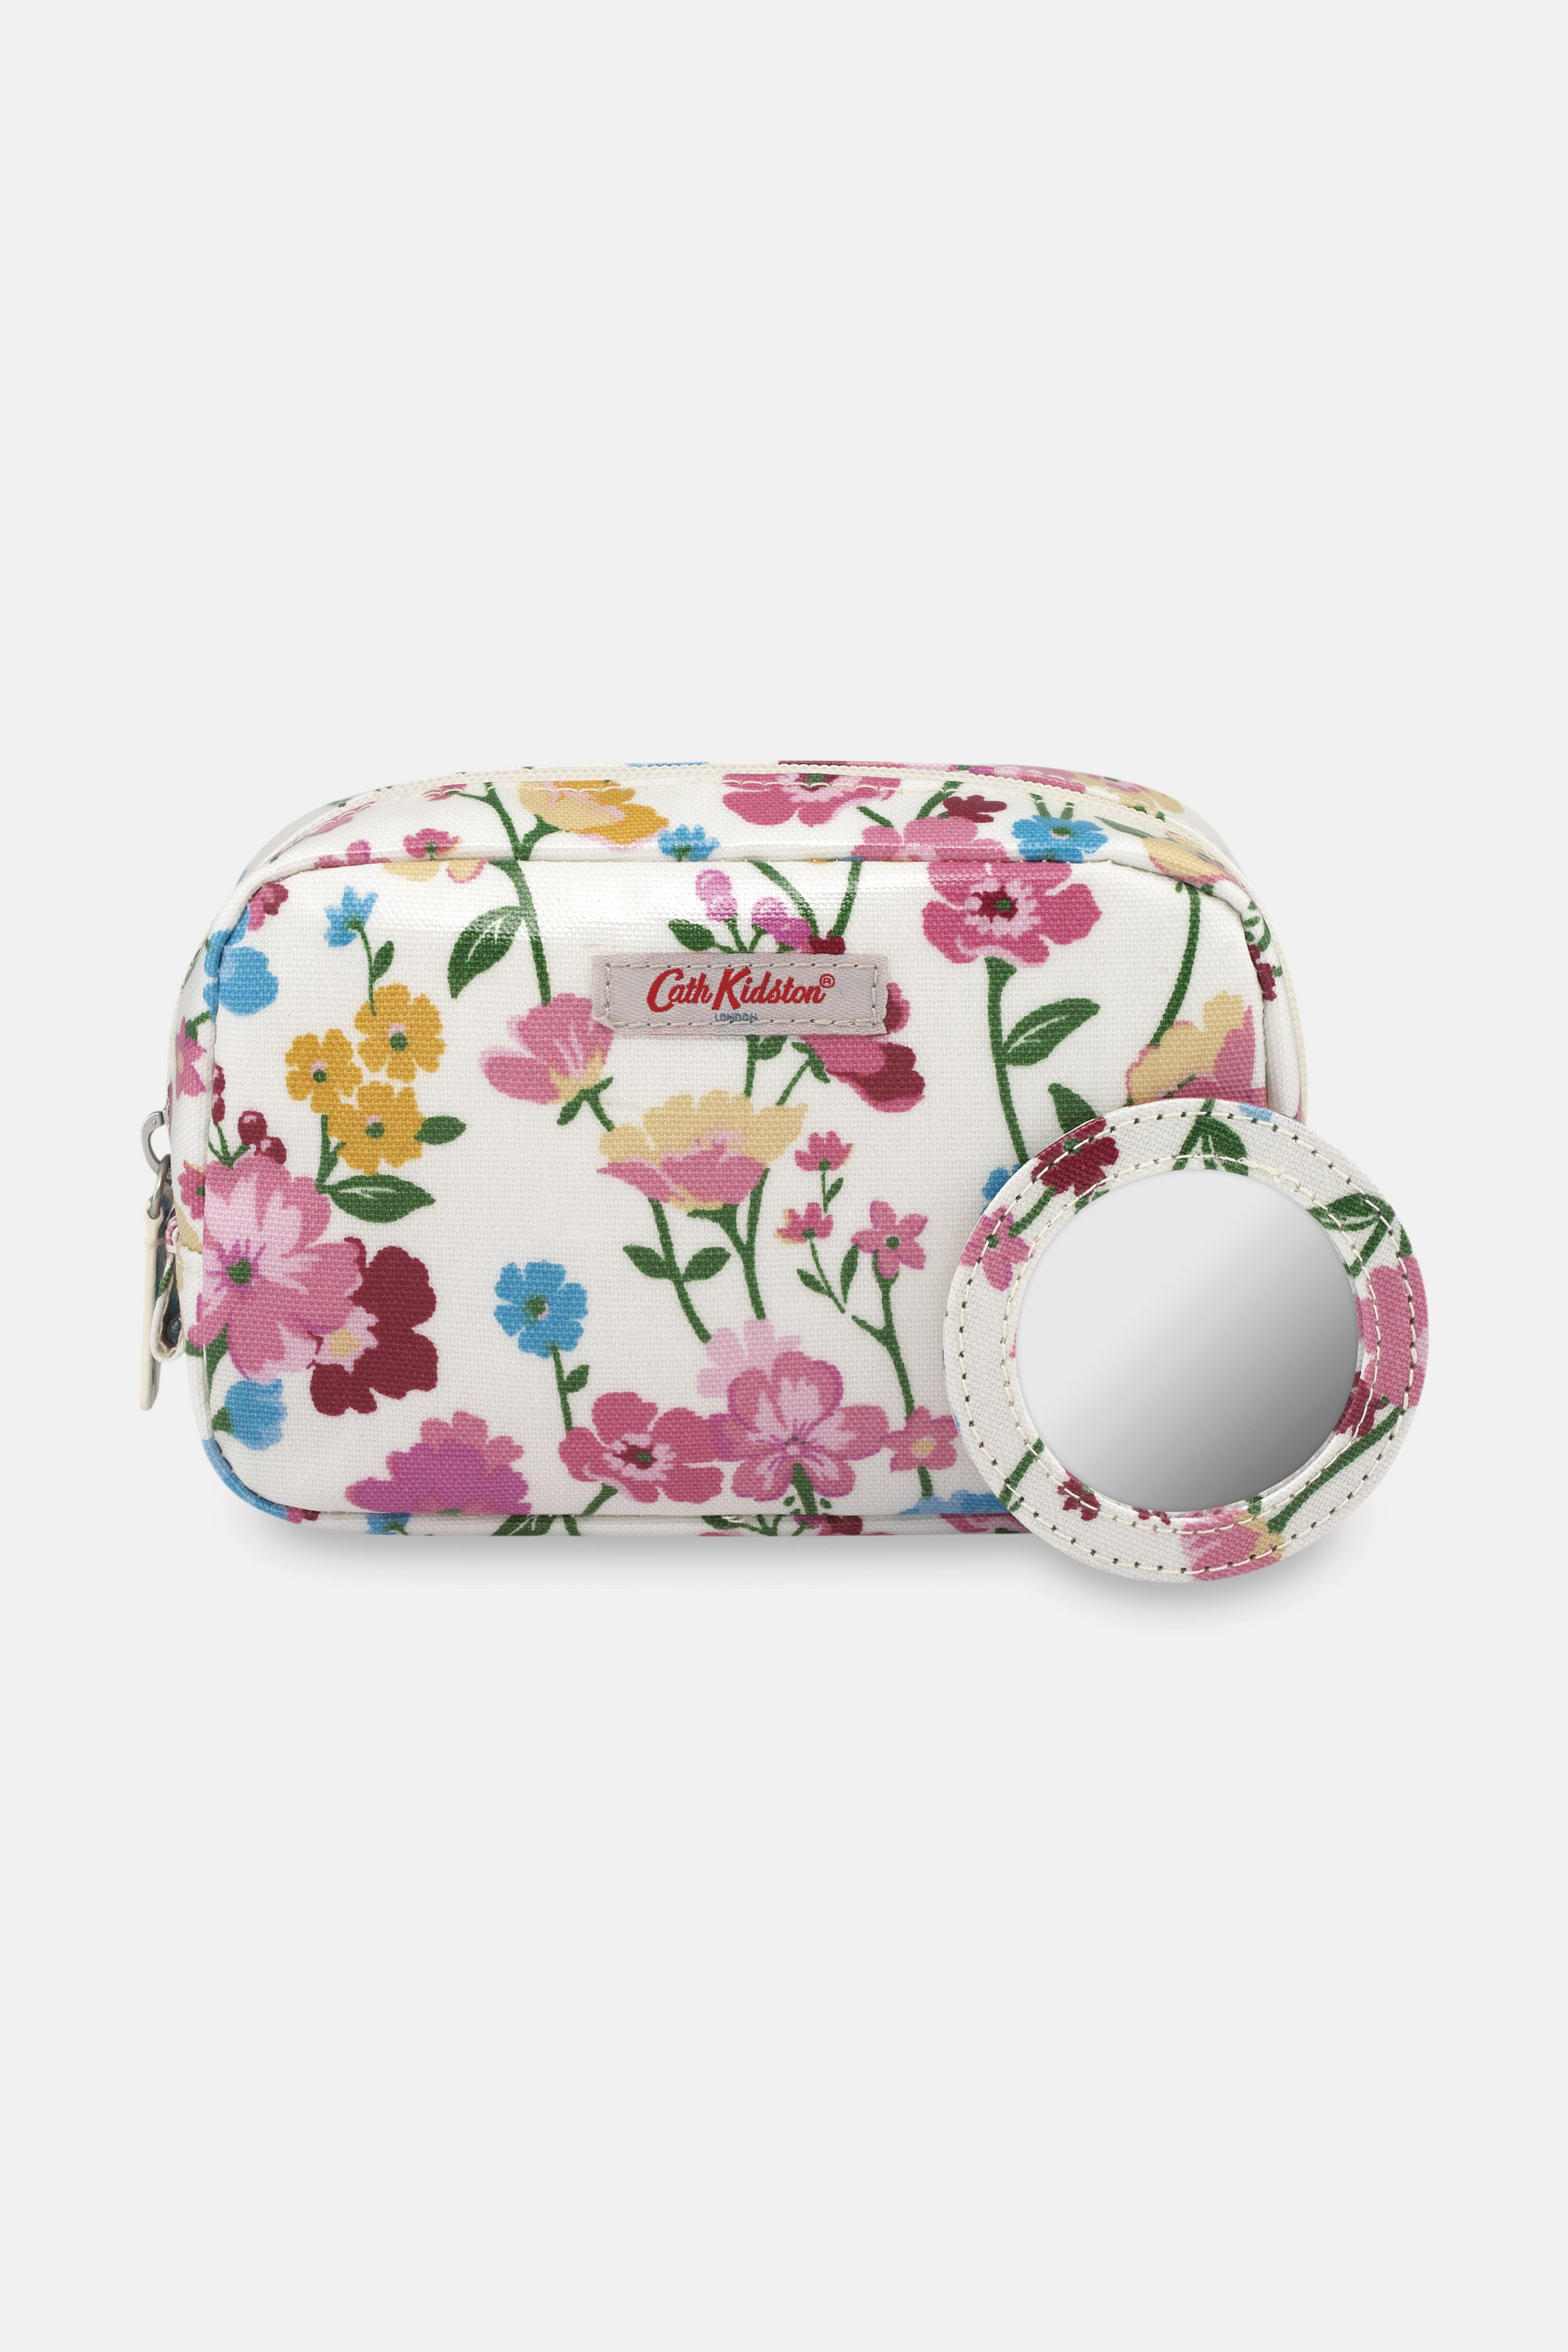 Cath Kidston Park Meadow Classic Makeup Case in Warm Cream